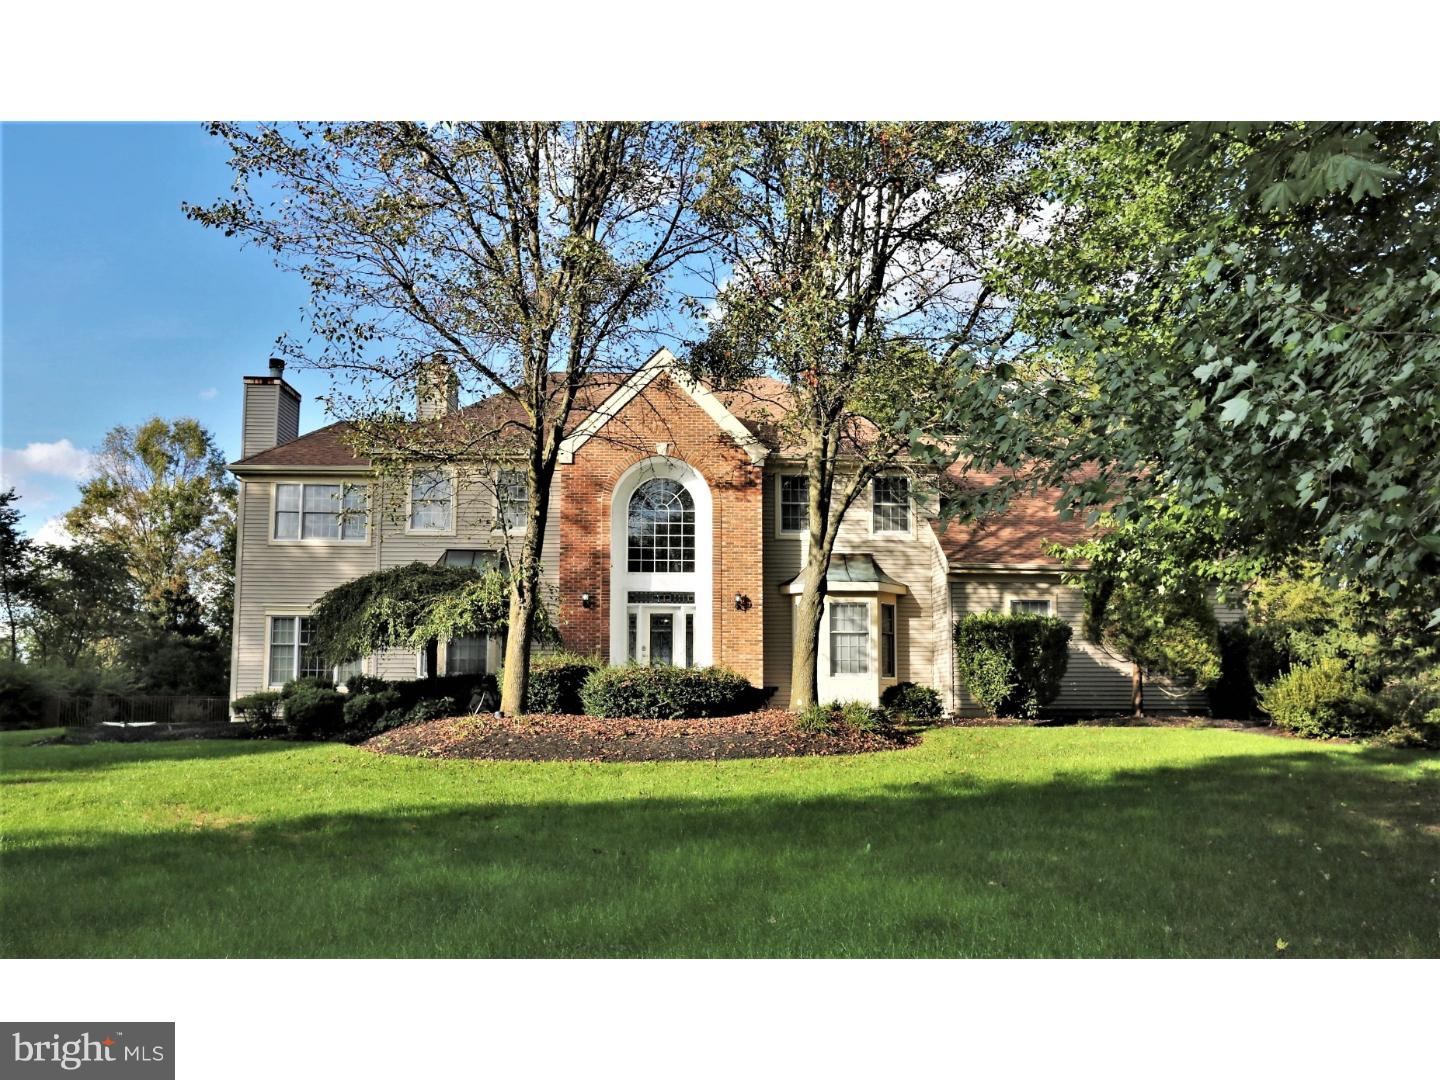 Property for Sale at 22 BRENTWOOD Lane Cranbury, New Jersey 08512 United States